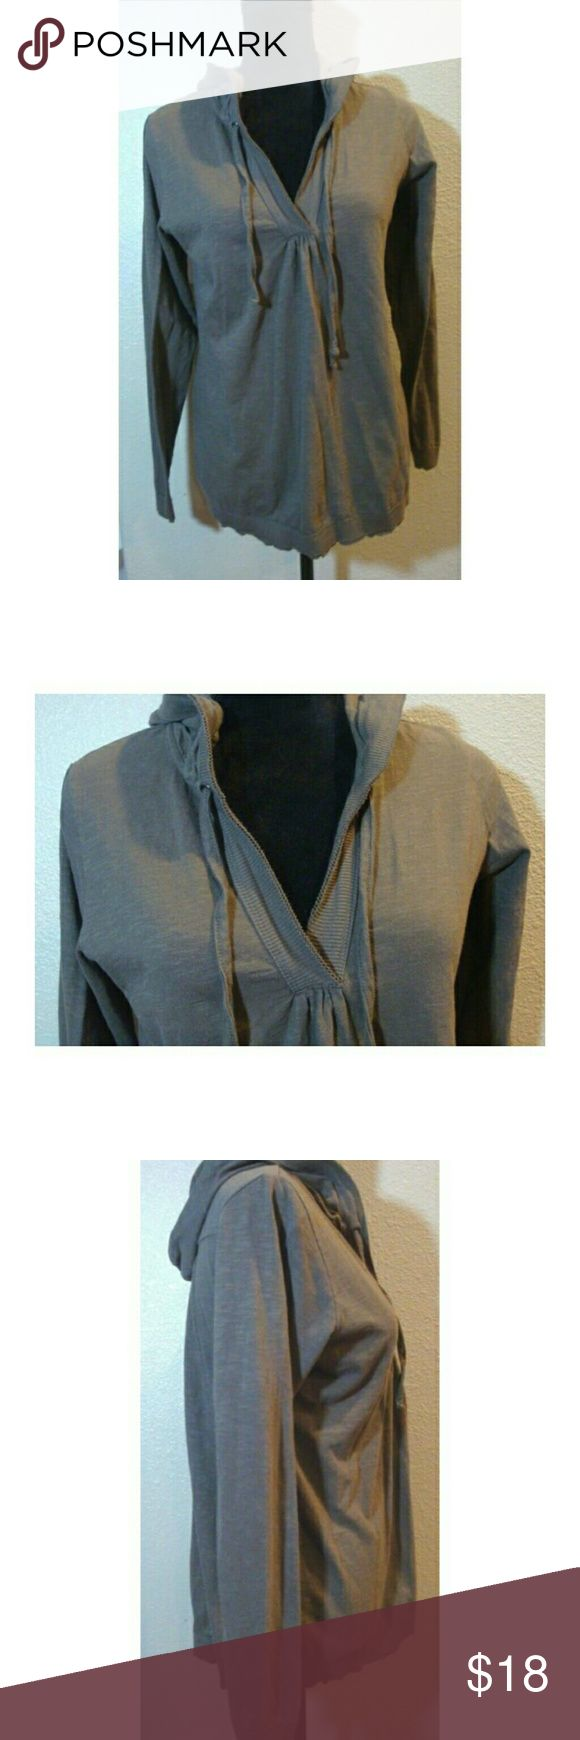 "AVENTURA CLOTHING 100% organic cotton L/S hoodie Excellent pre-owned AVENTURA CLOTHING, 100% organic cotton, Long-Sleeved Hooded Pullover, unique color is Grayish Taupe leaning towards brown, size Medium. Ties at neckline.  Length - 25"" Pit to pit - 17""  Smoke and pet free home  (P) aventura Jackets & Coats"